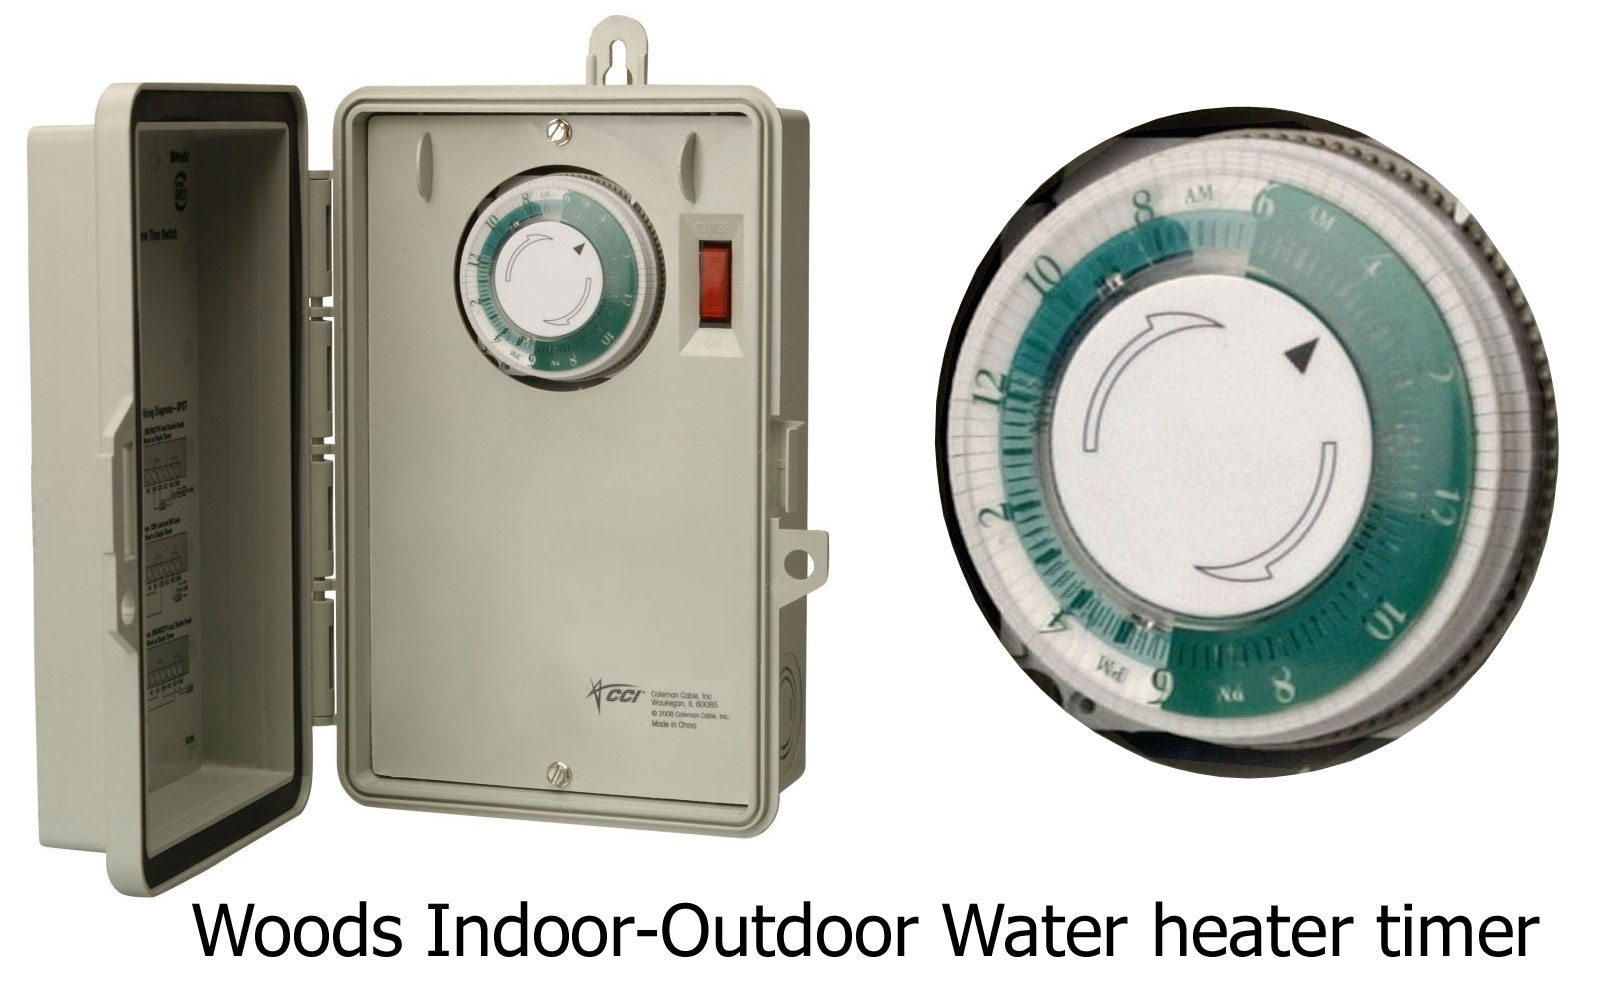 Magnificent Woods Water Heater See Larger Compare Box Timers Water Heater Timer Wiring Diagram Water Heater Timer Reviews houzz 01 Water Heater Timer